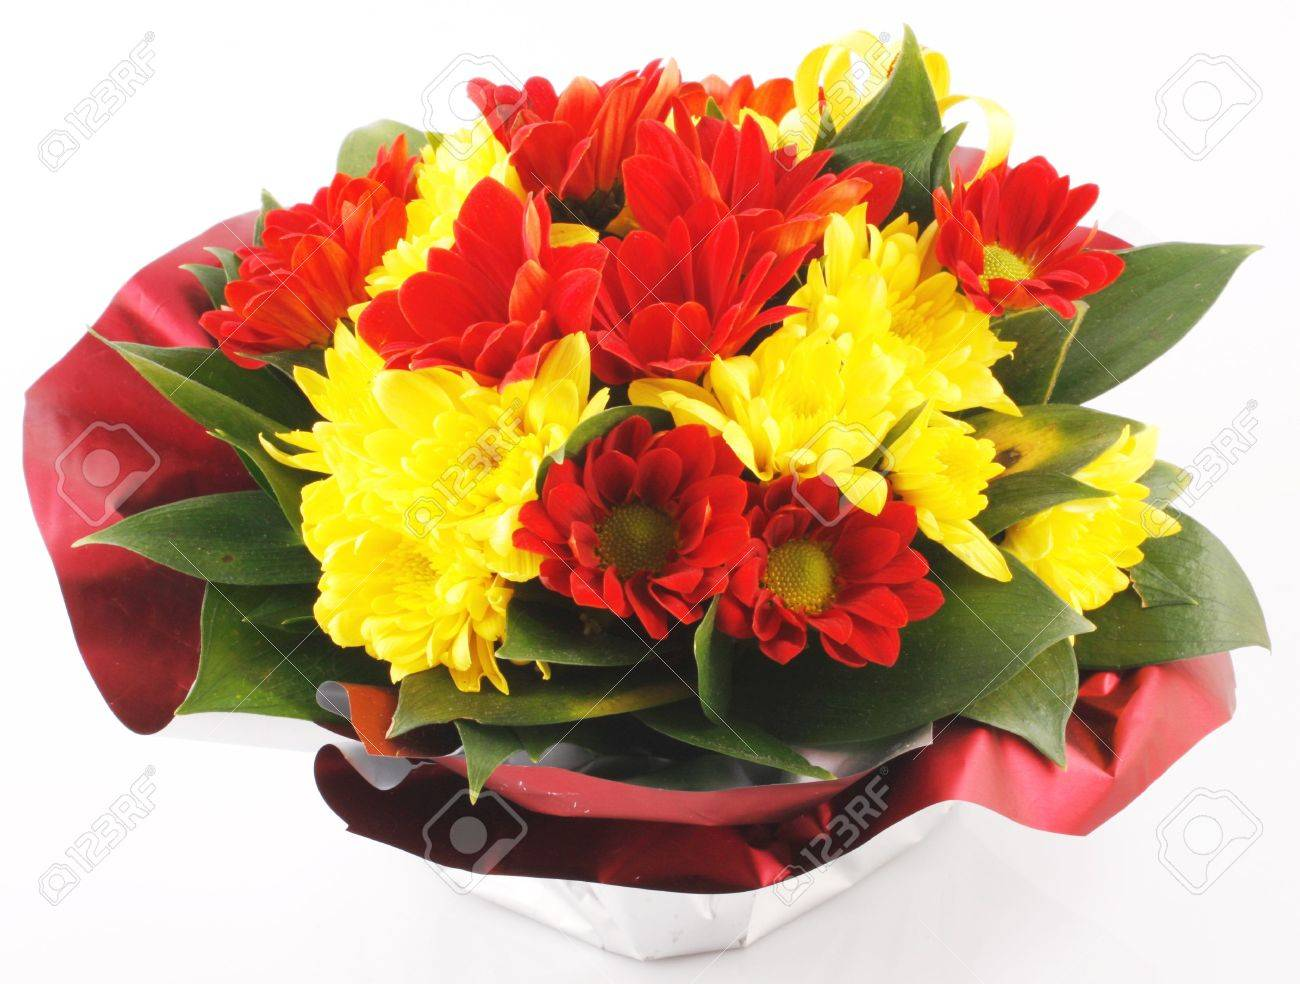 Bouquet yellow and red flowers on a white background stock photo bouquet yellow and red flowers on a white background stock photo 8168367 mightylinksfo